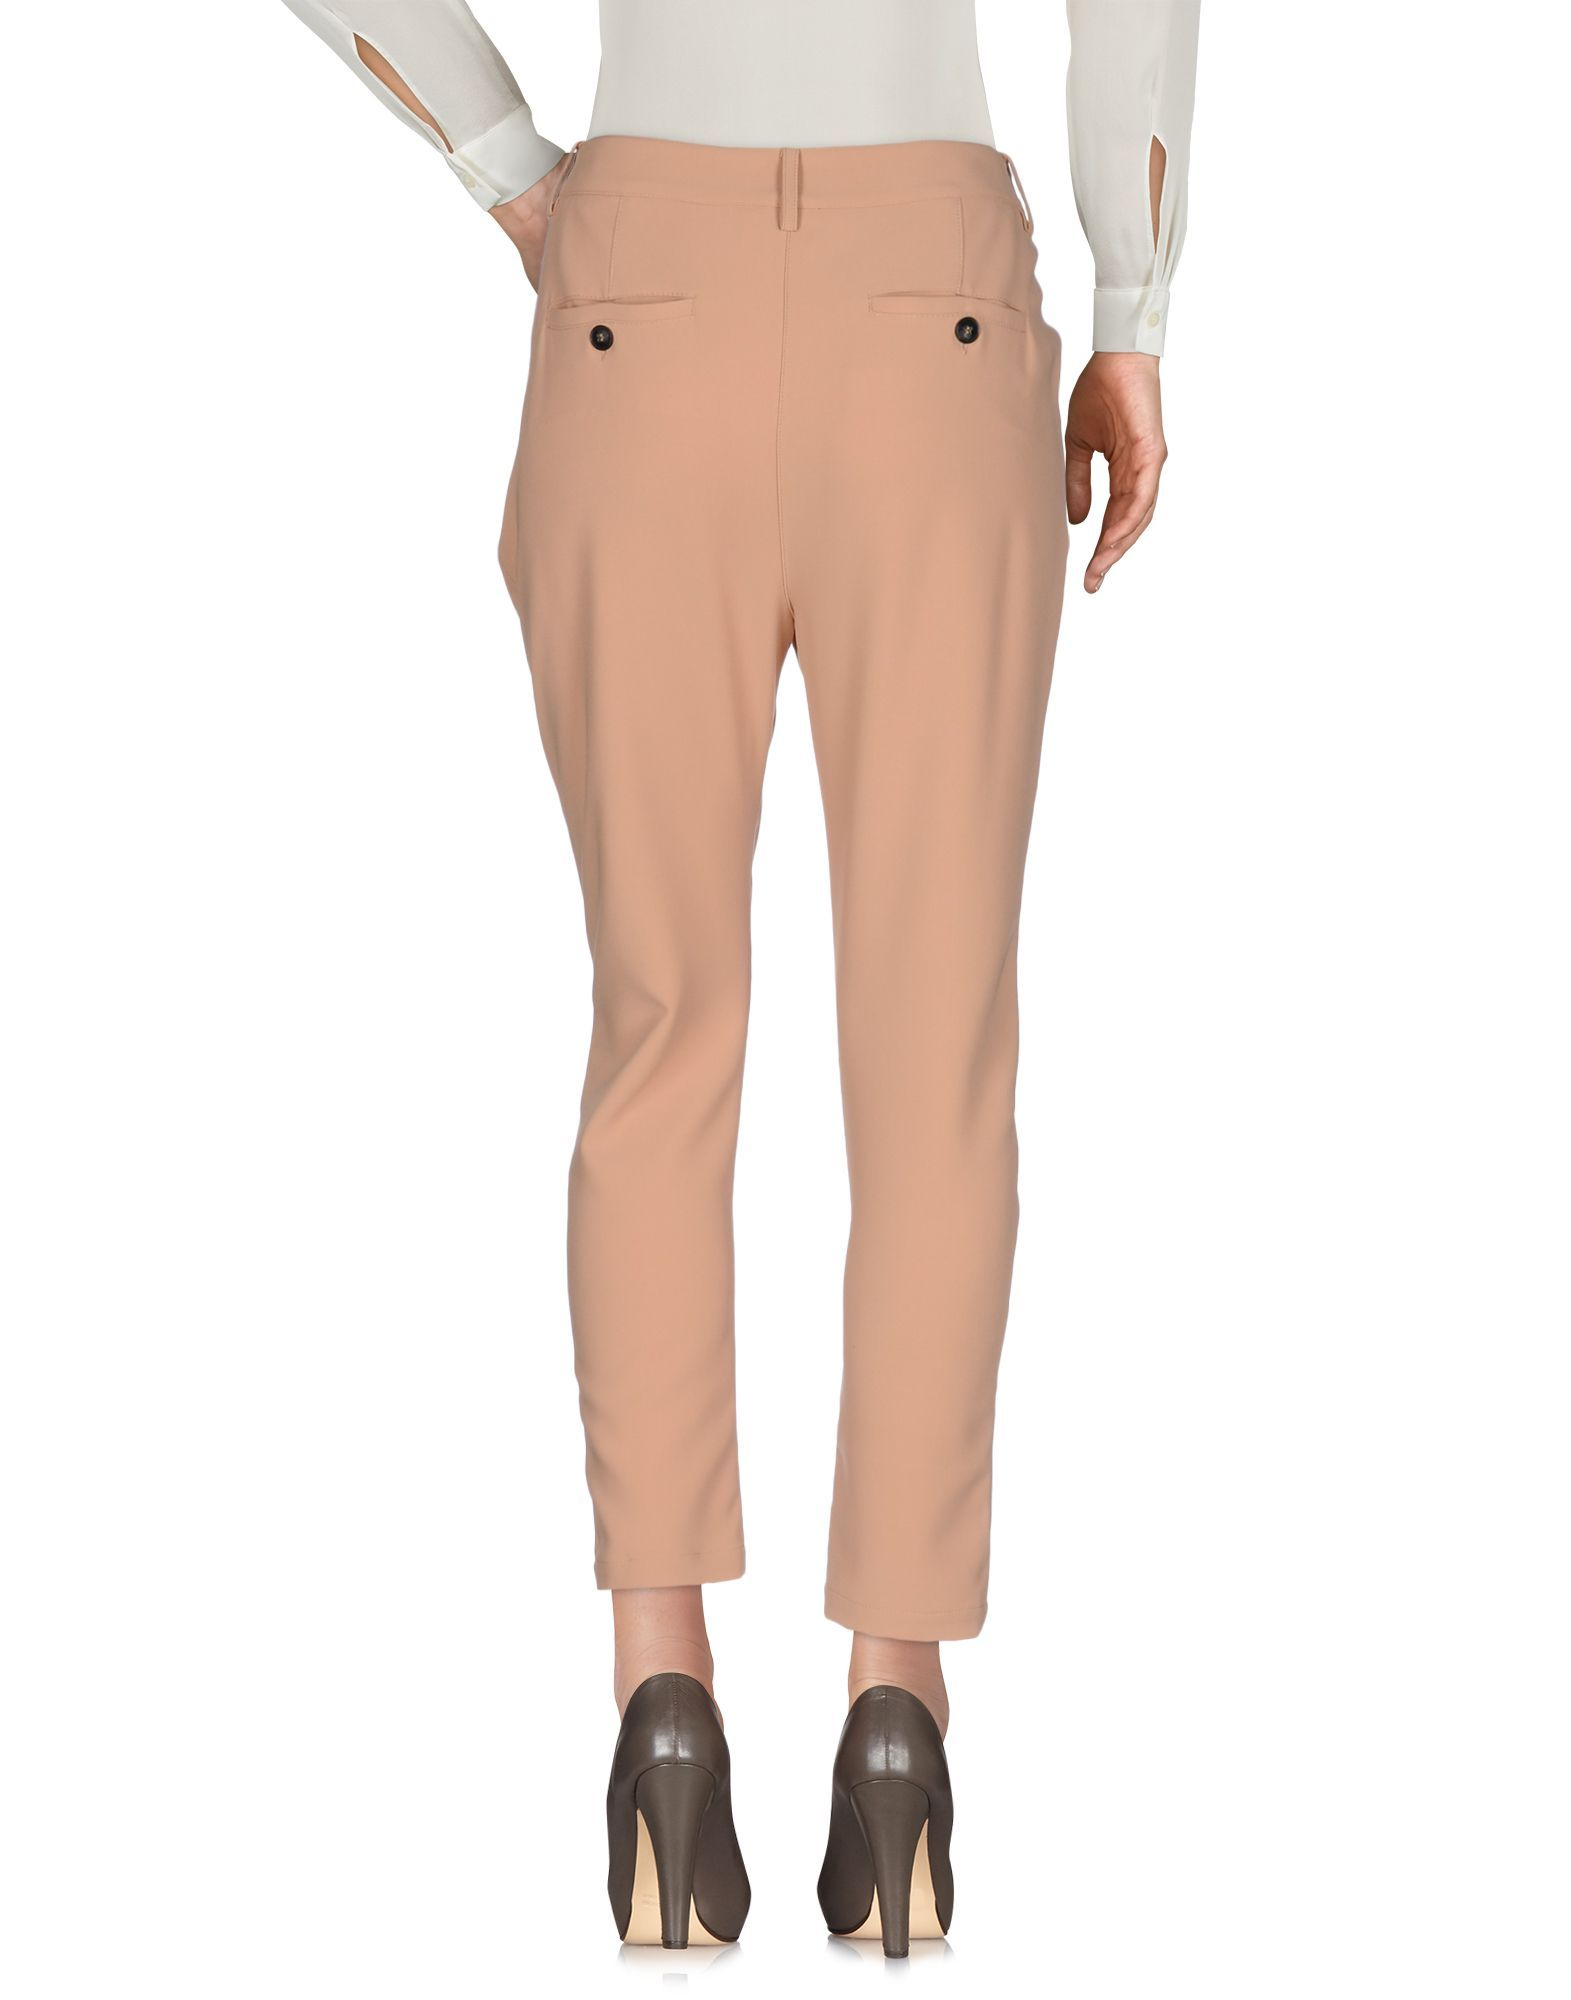 Atos Atos Lombardini Pale Pink High Waisted Tapered Leg Tailored Trousers